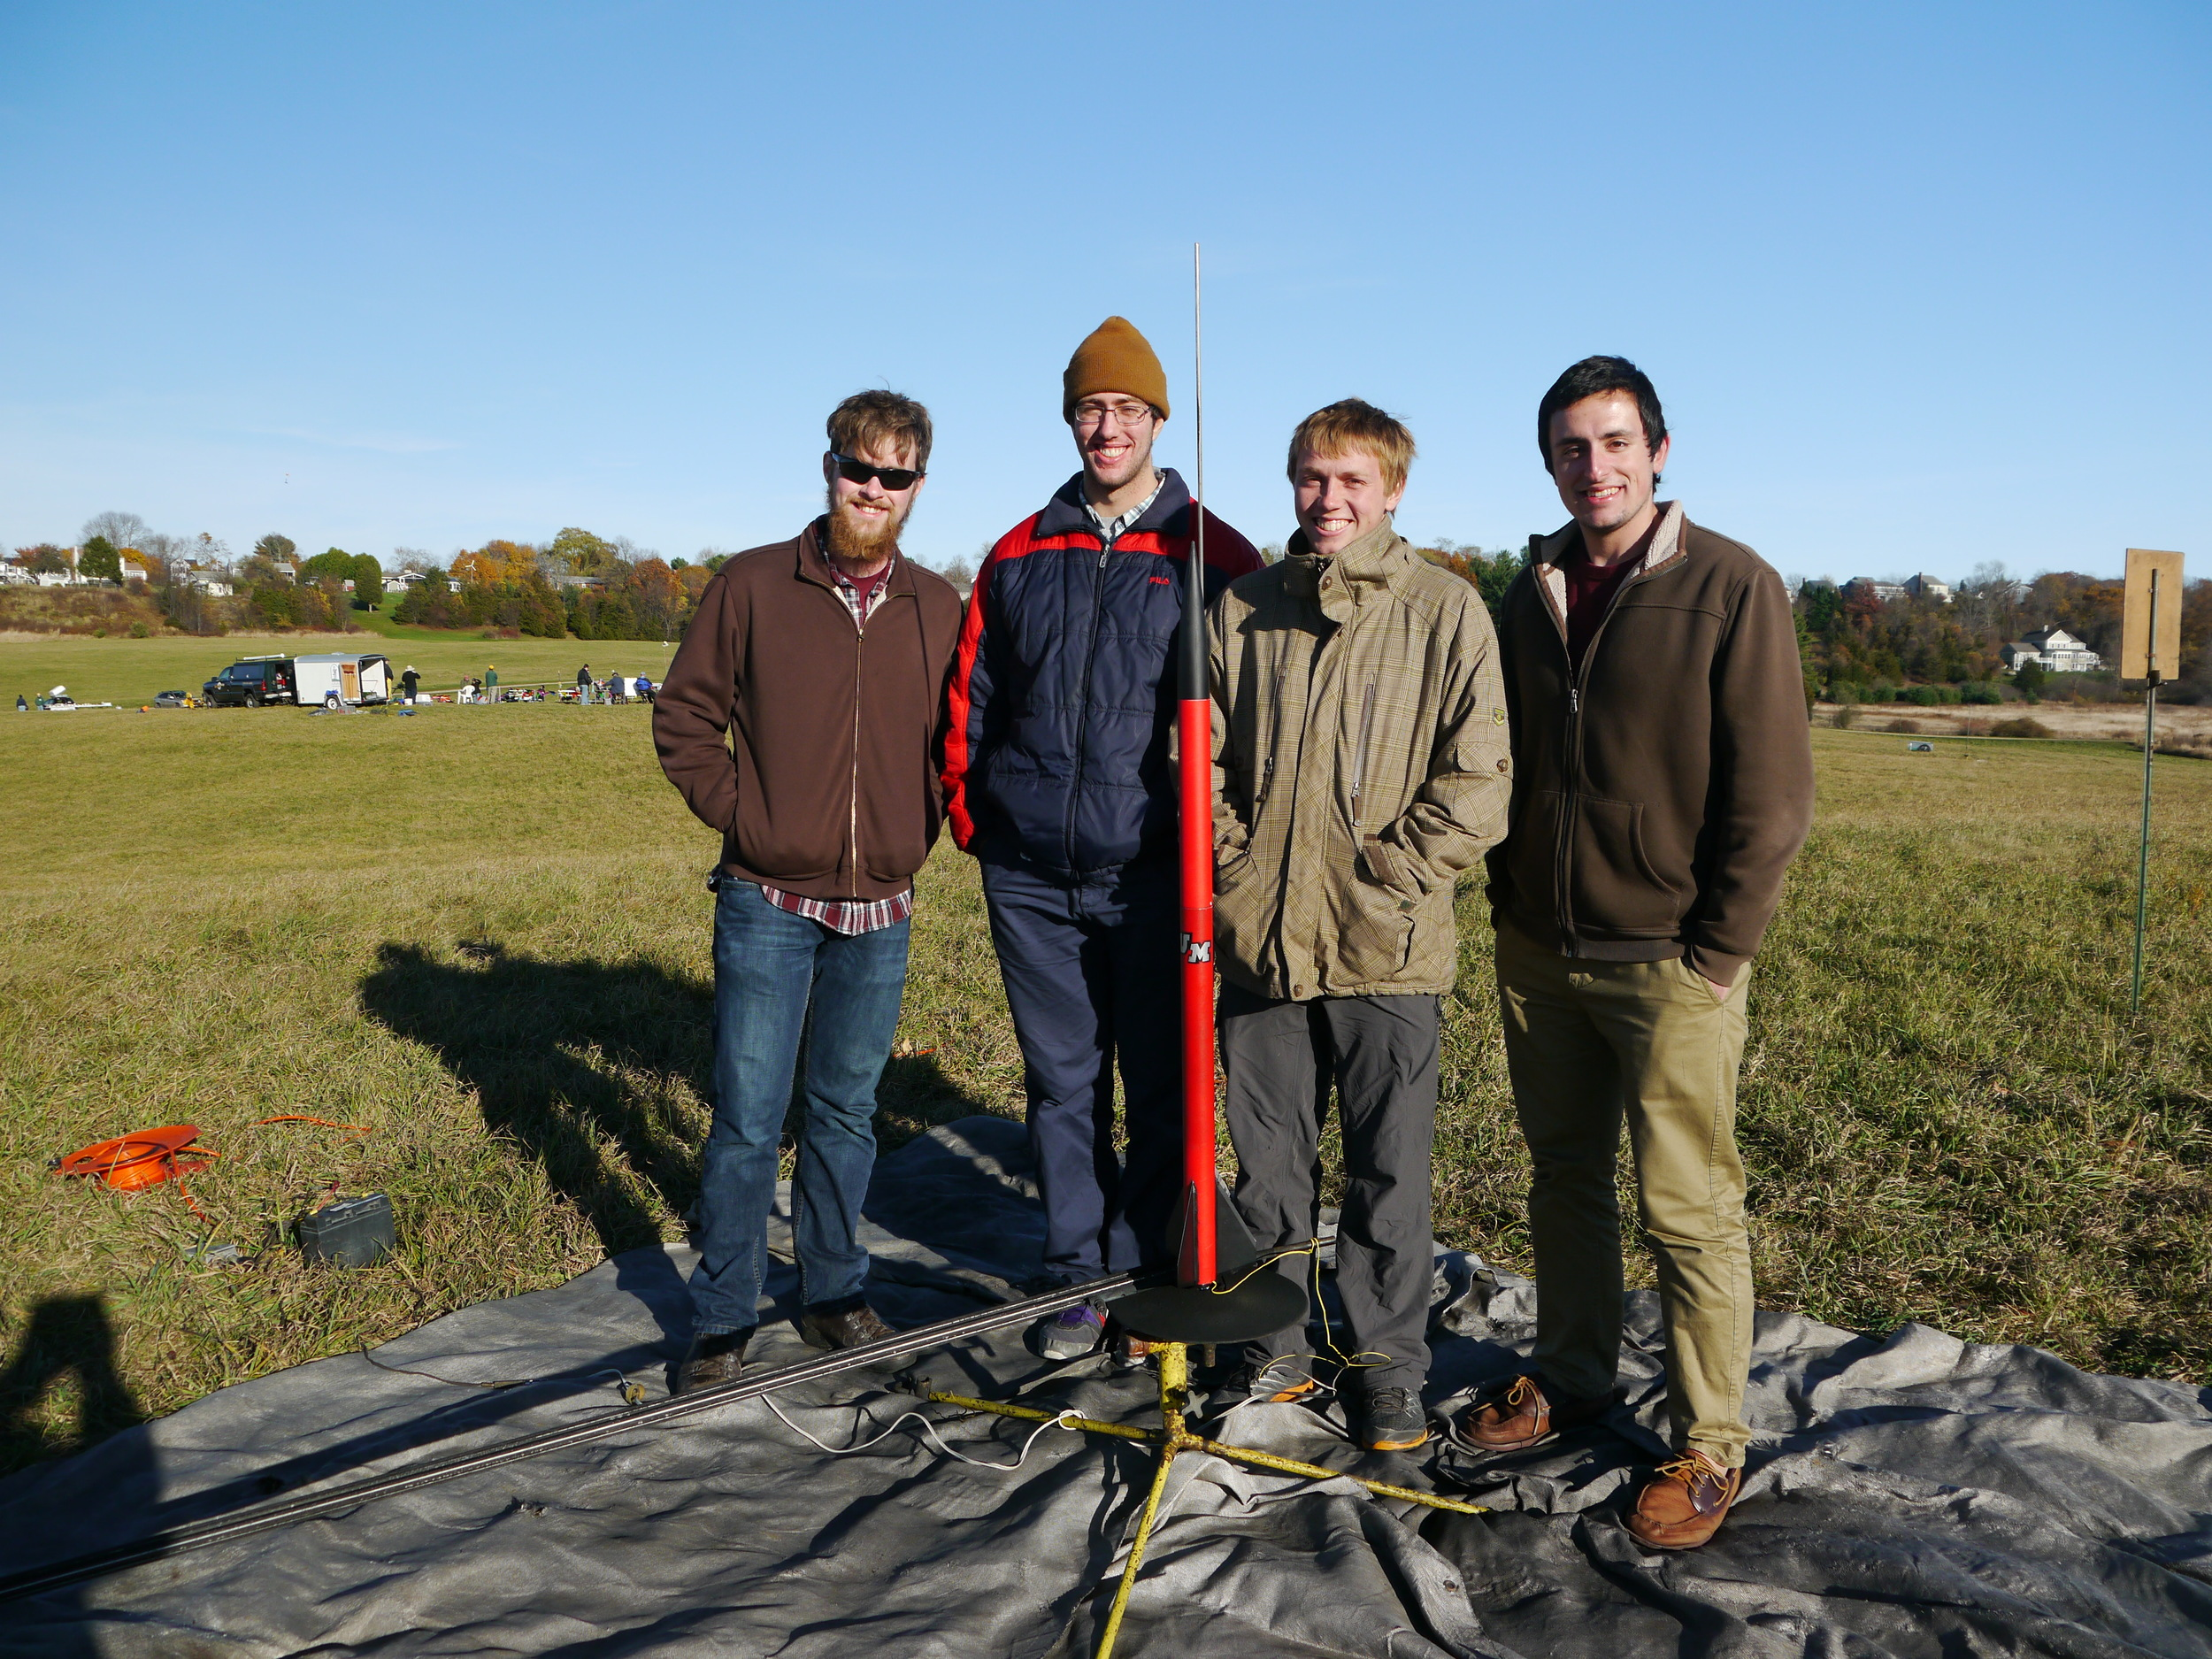 The UMass Student Launch Team with their first vehicle.